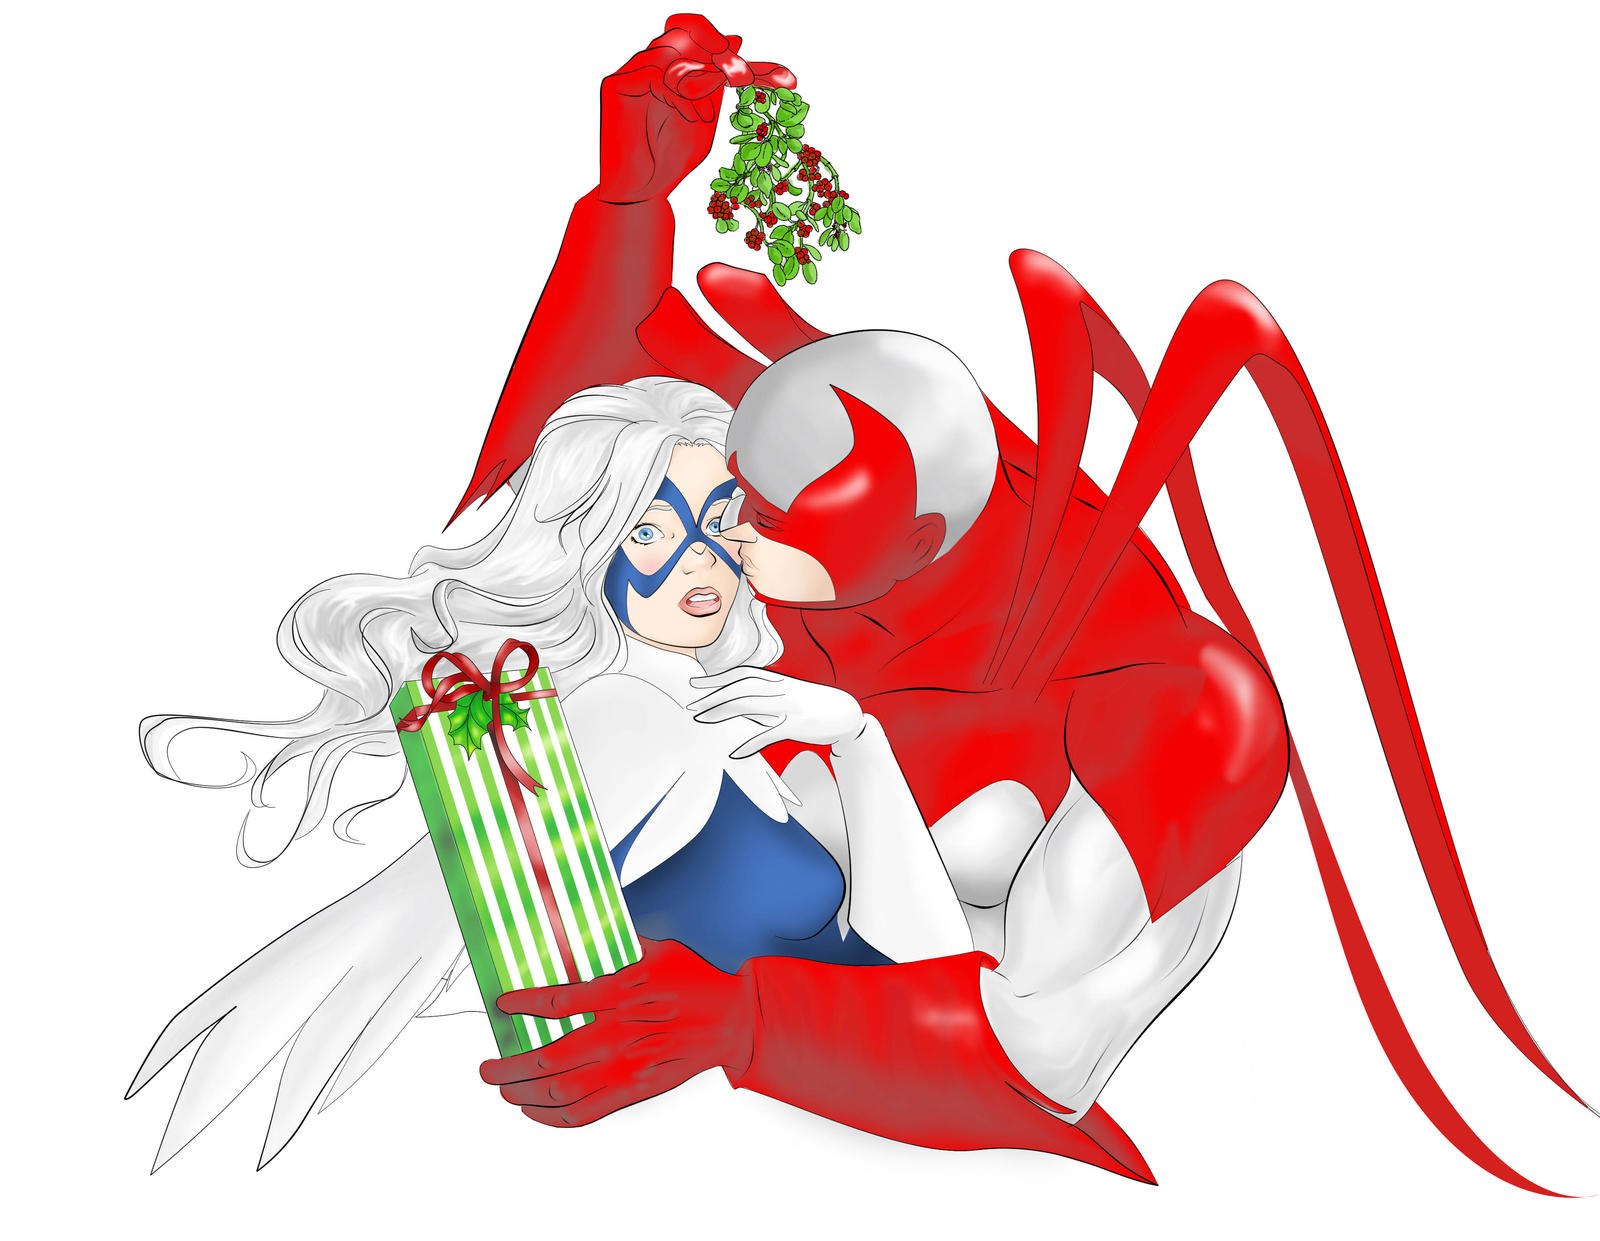 Hawk and Dove under the Mistletoe by Ayhe on DeviantArt